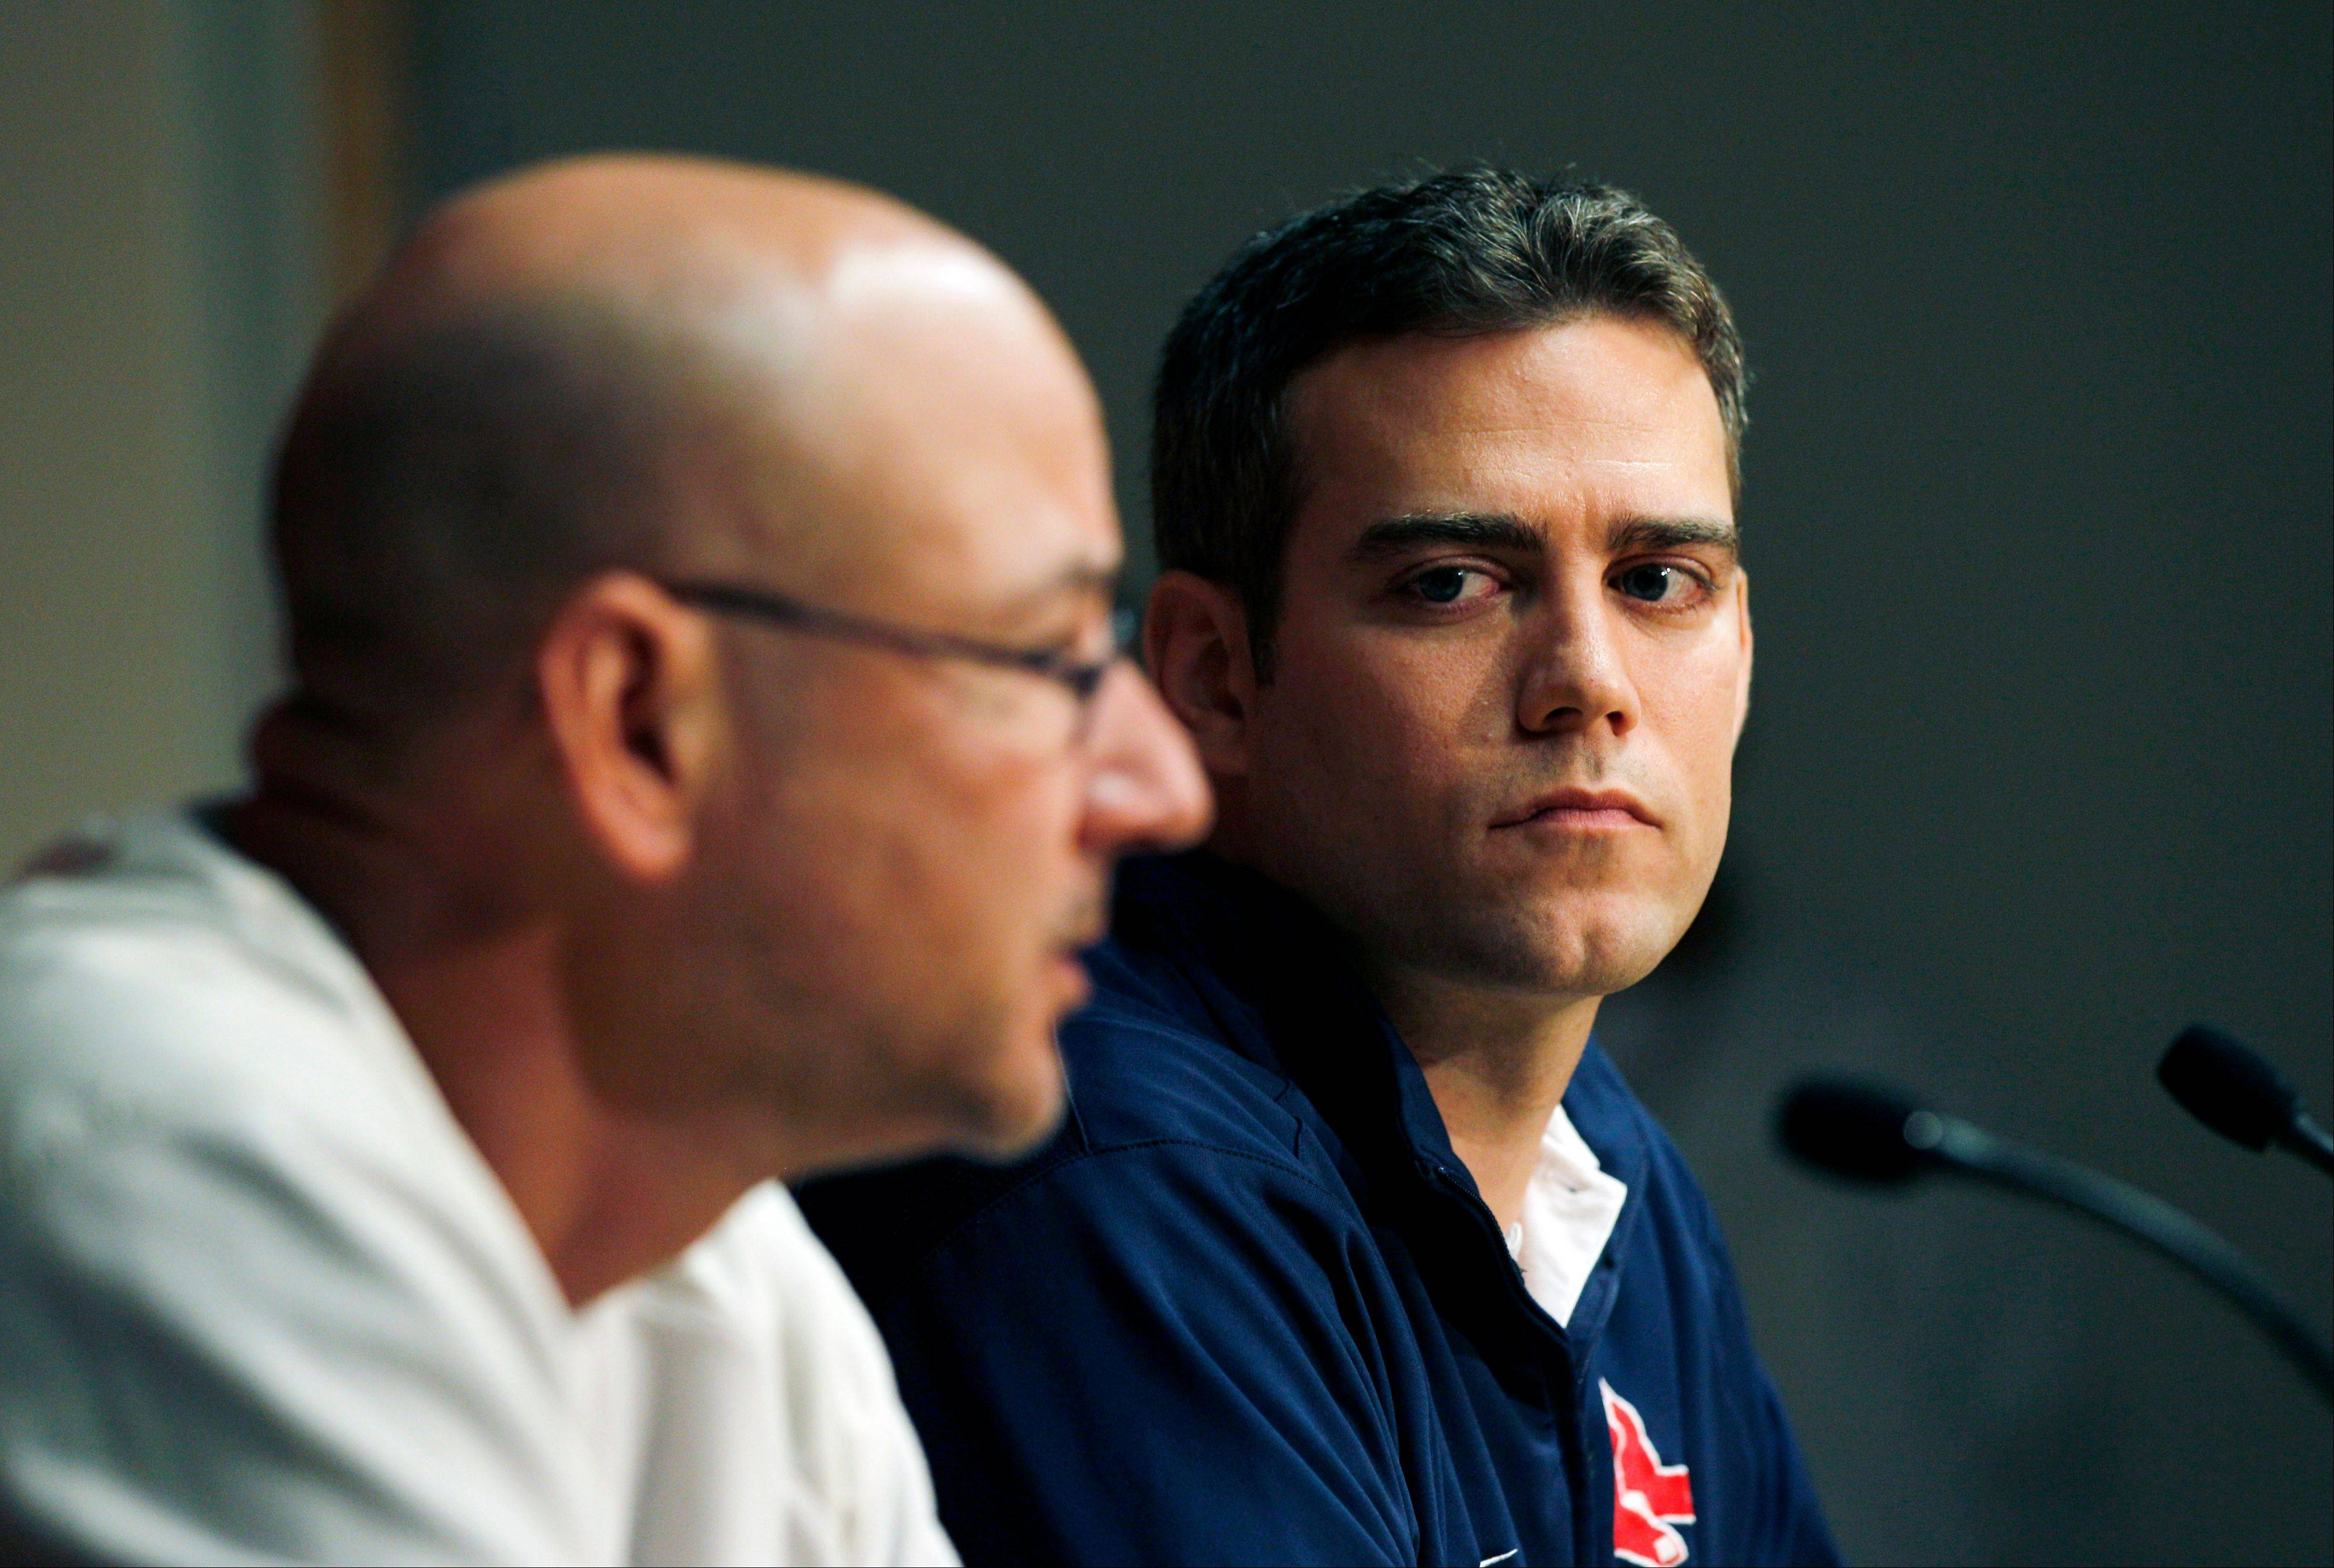 Boston Red Sox manager Terry Francona, left, speaks as general manager Theo Epstein listens during a news conference at Fenway Park after they were eliminated from participating in the baseball playoffs.